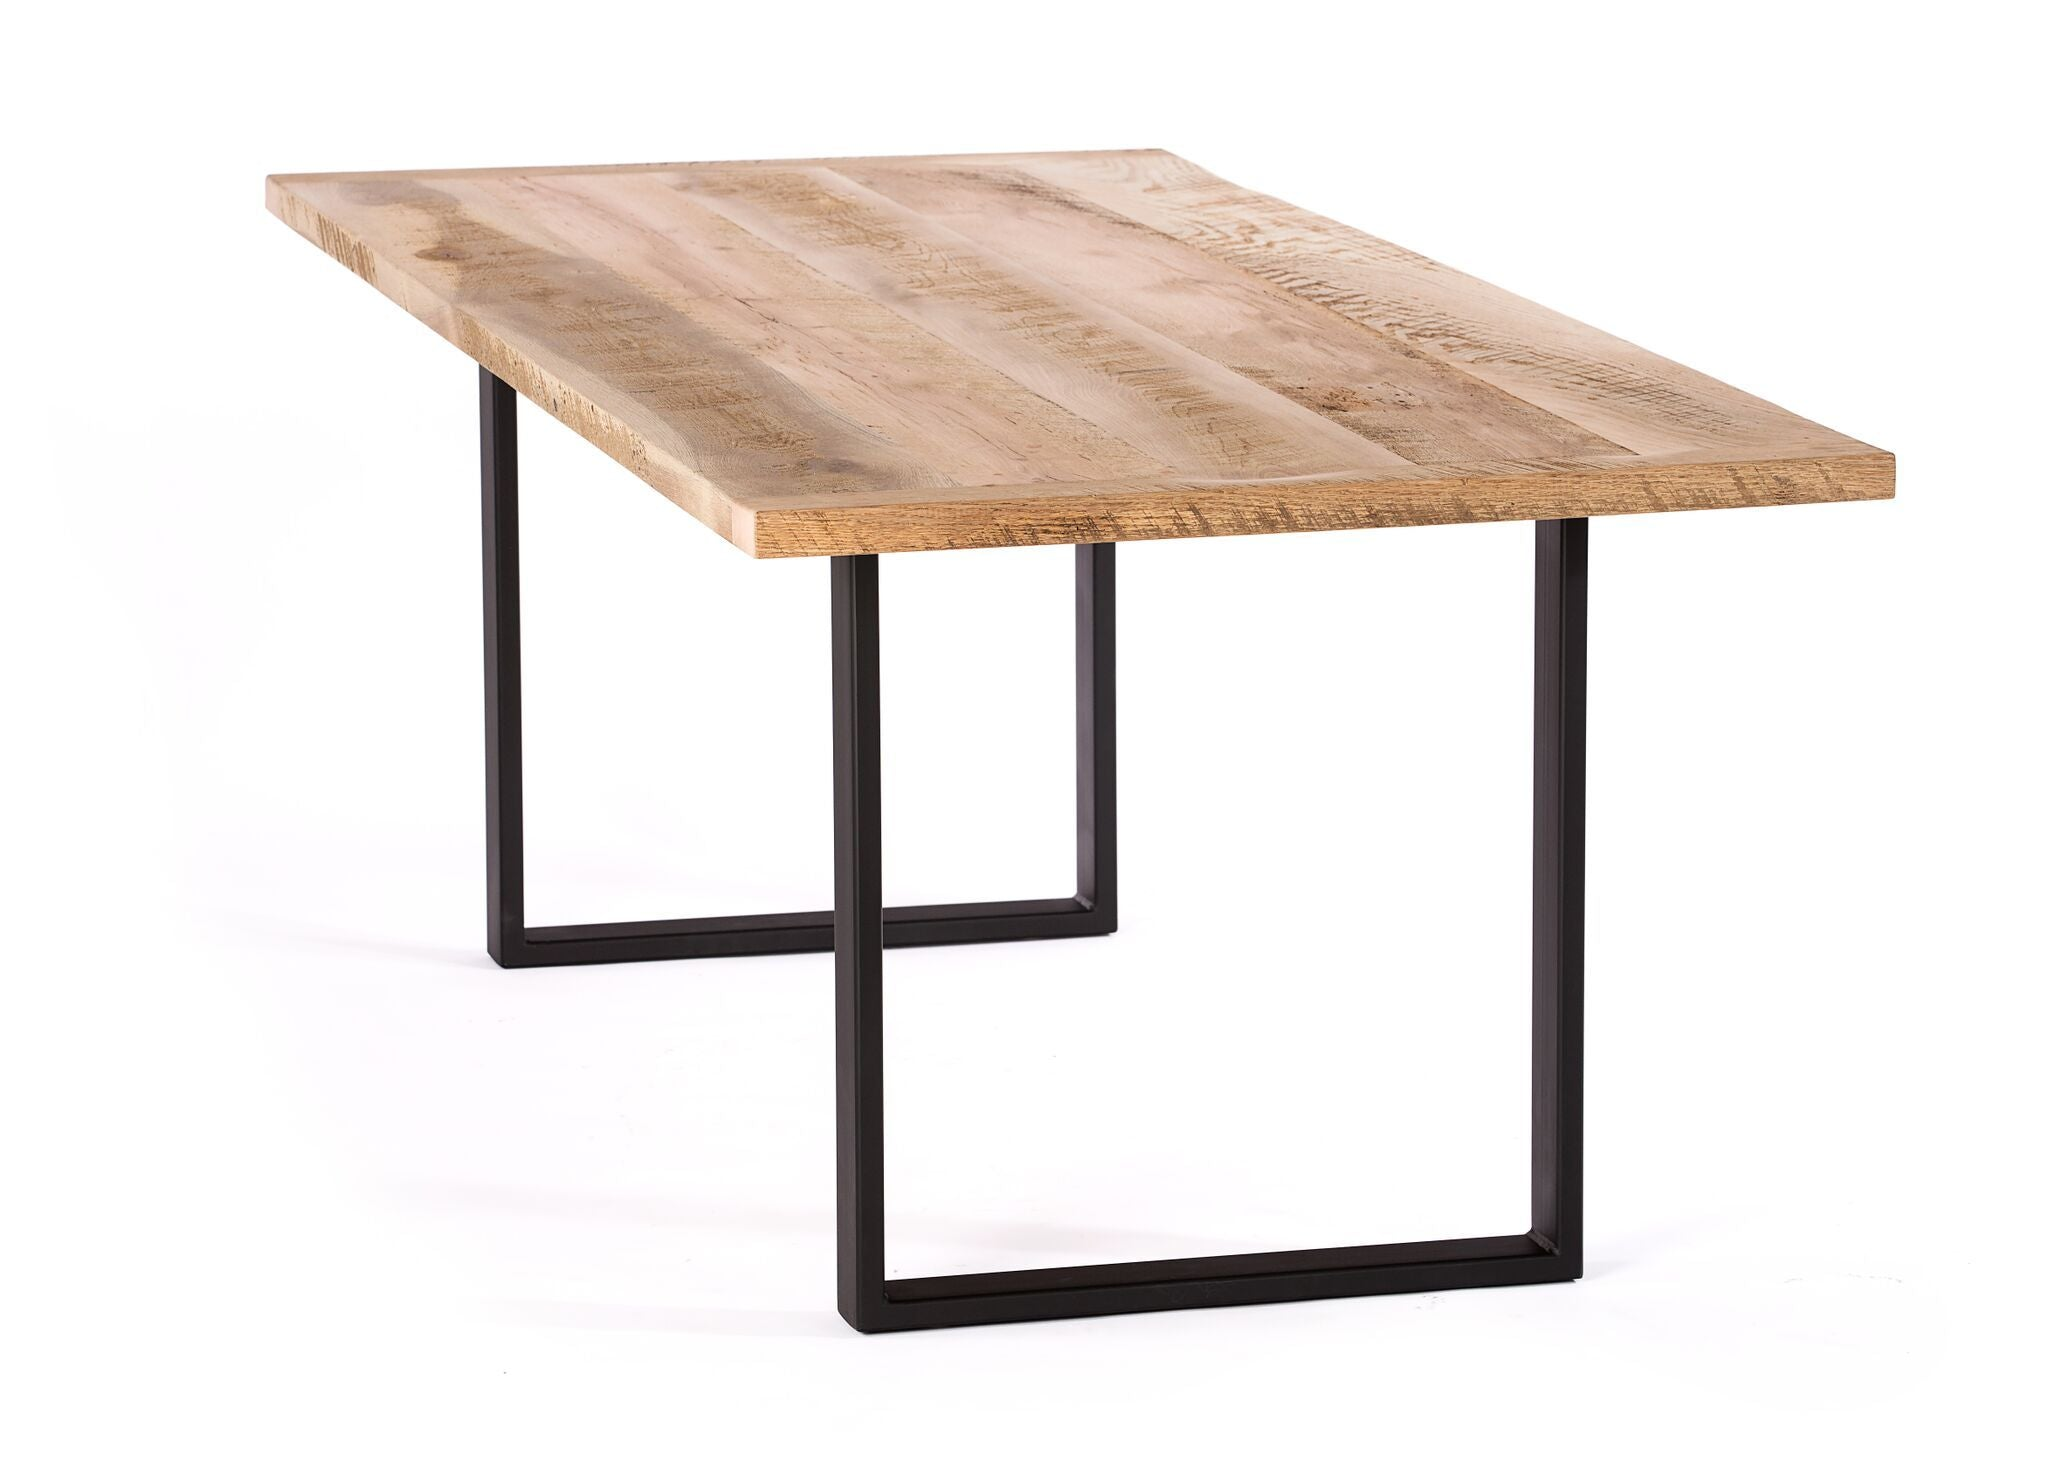 "Rectangular Wood Tables | Maddox Table | Ash | Ash | CUSTOM SIZE L 55 W 30 H 30 | 1.5"" Standard"